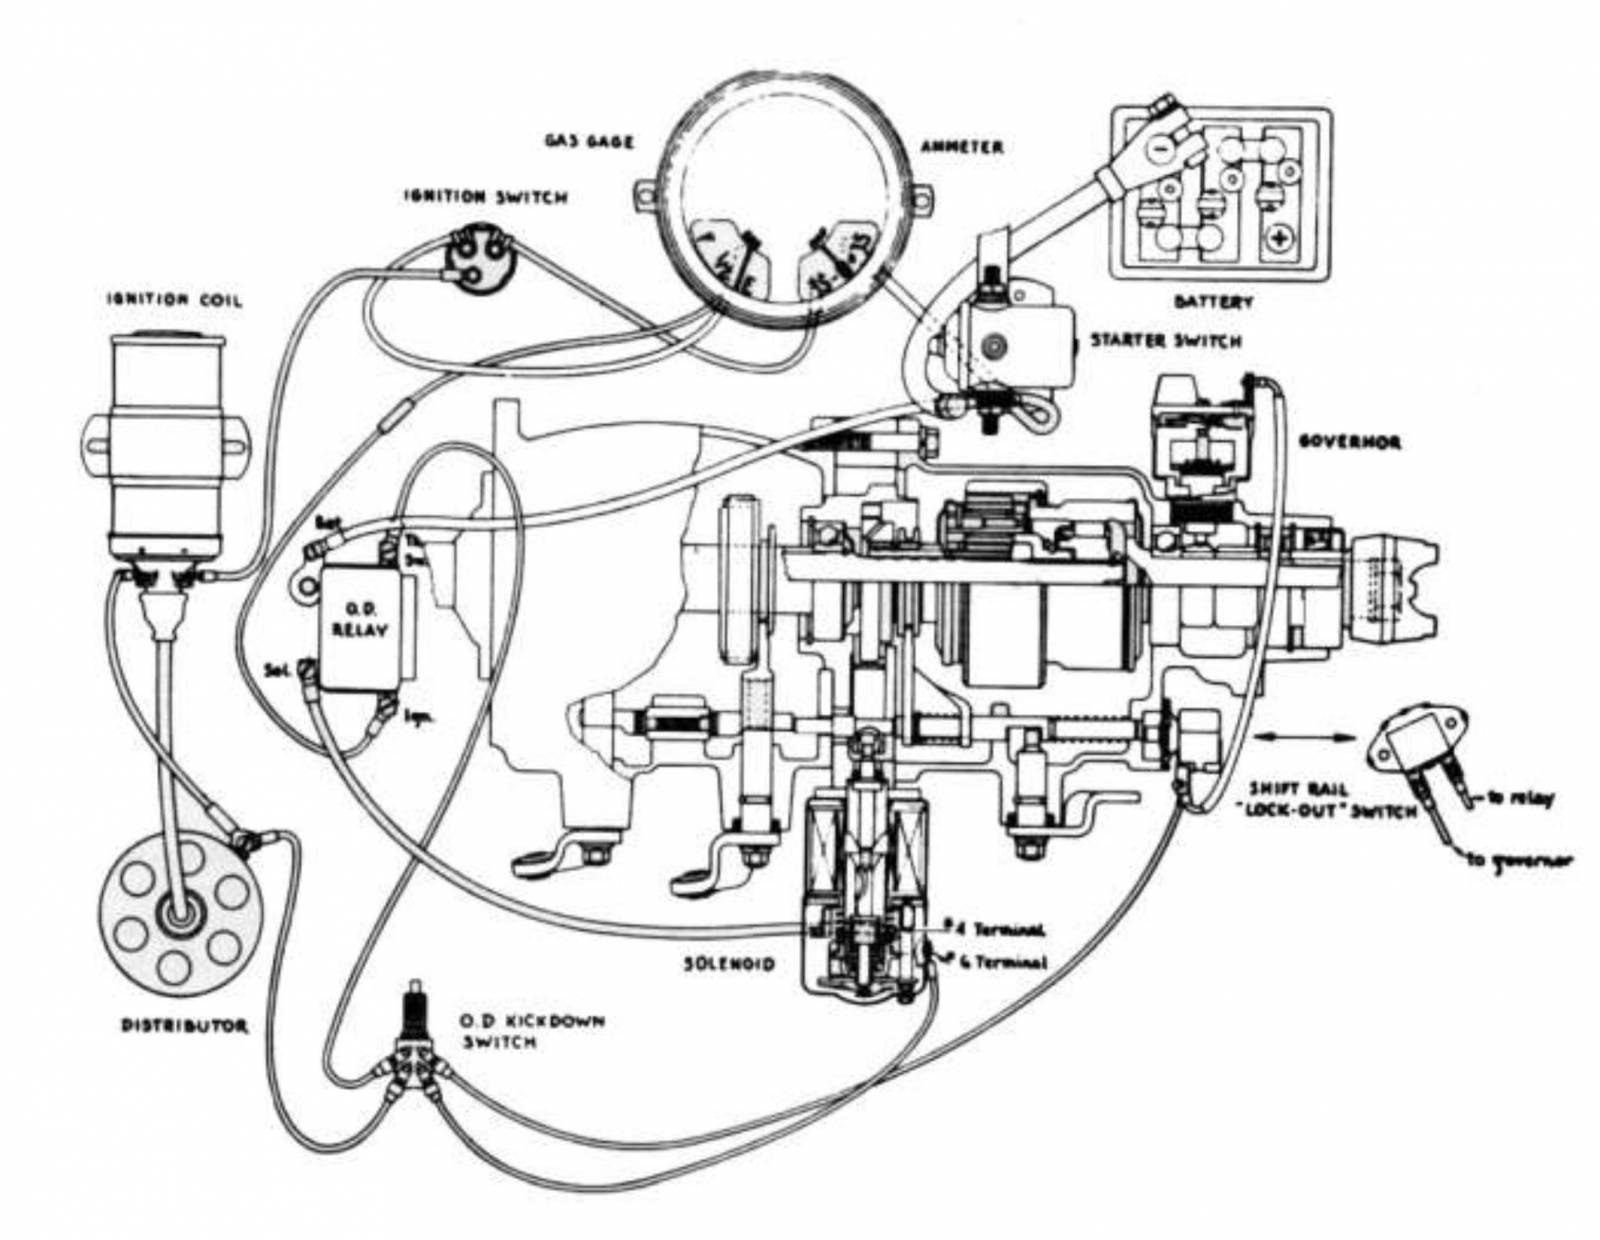 hight resolution of  alternator wiring wiring diagram schematics 53 ford 1948 64 ford f 100 overdrive relay borg warner reproduction 6 volt53 ford overdrive